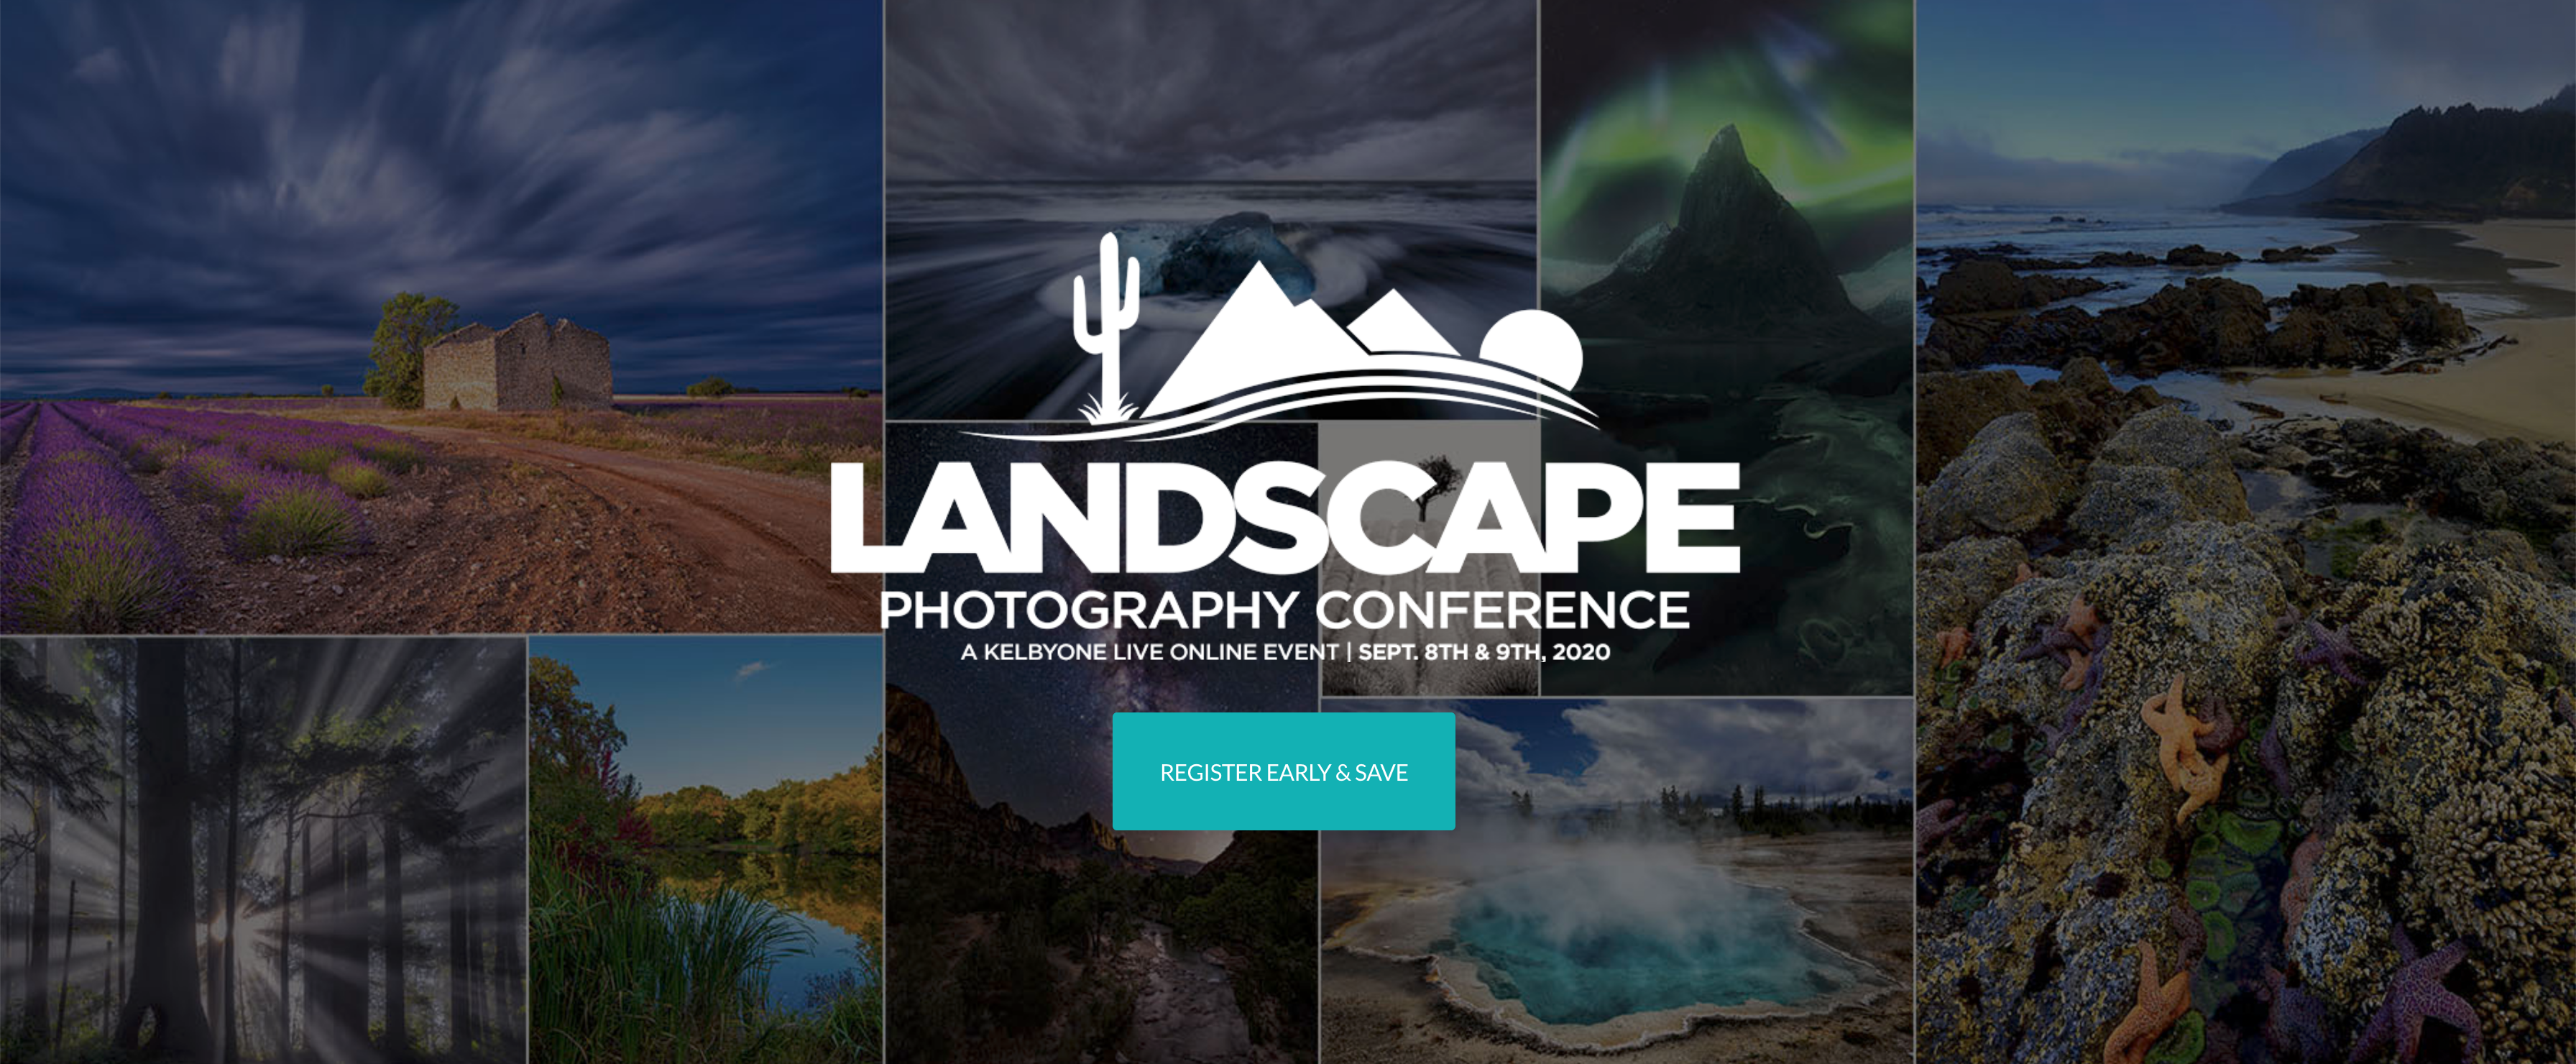 Epic Landscape Photography Conference!